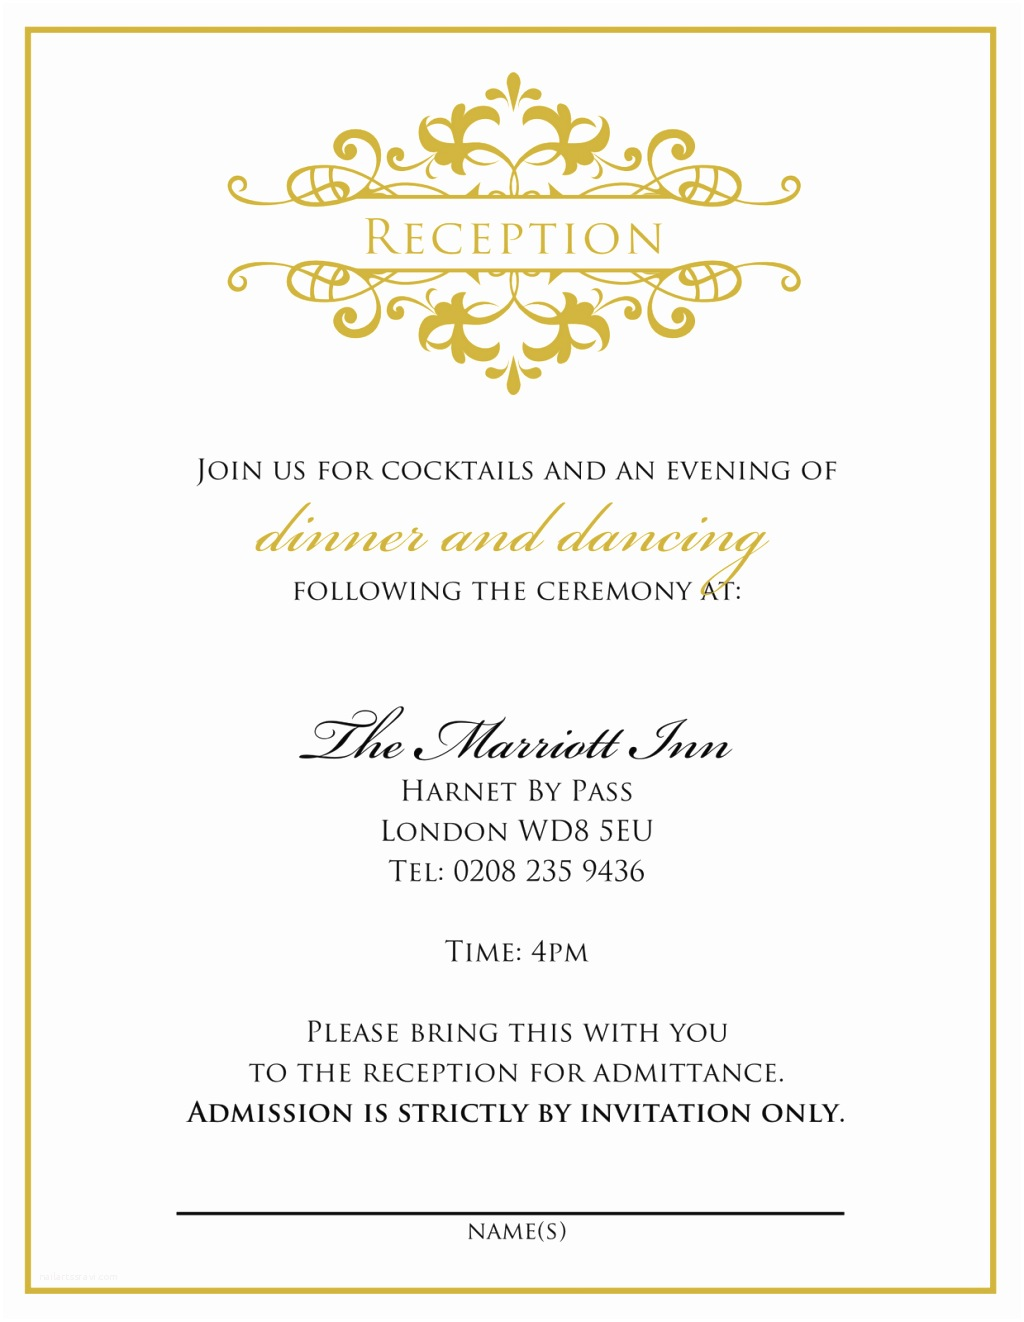 After Wedding Dinner Invitation Wording Wedding Invitation Wording From Bride and Groom